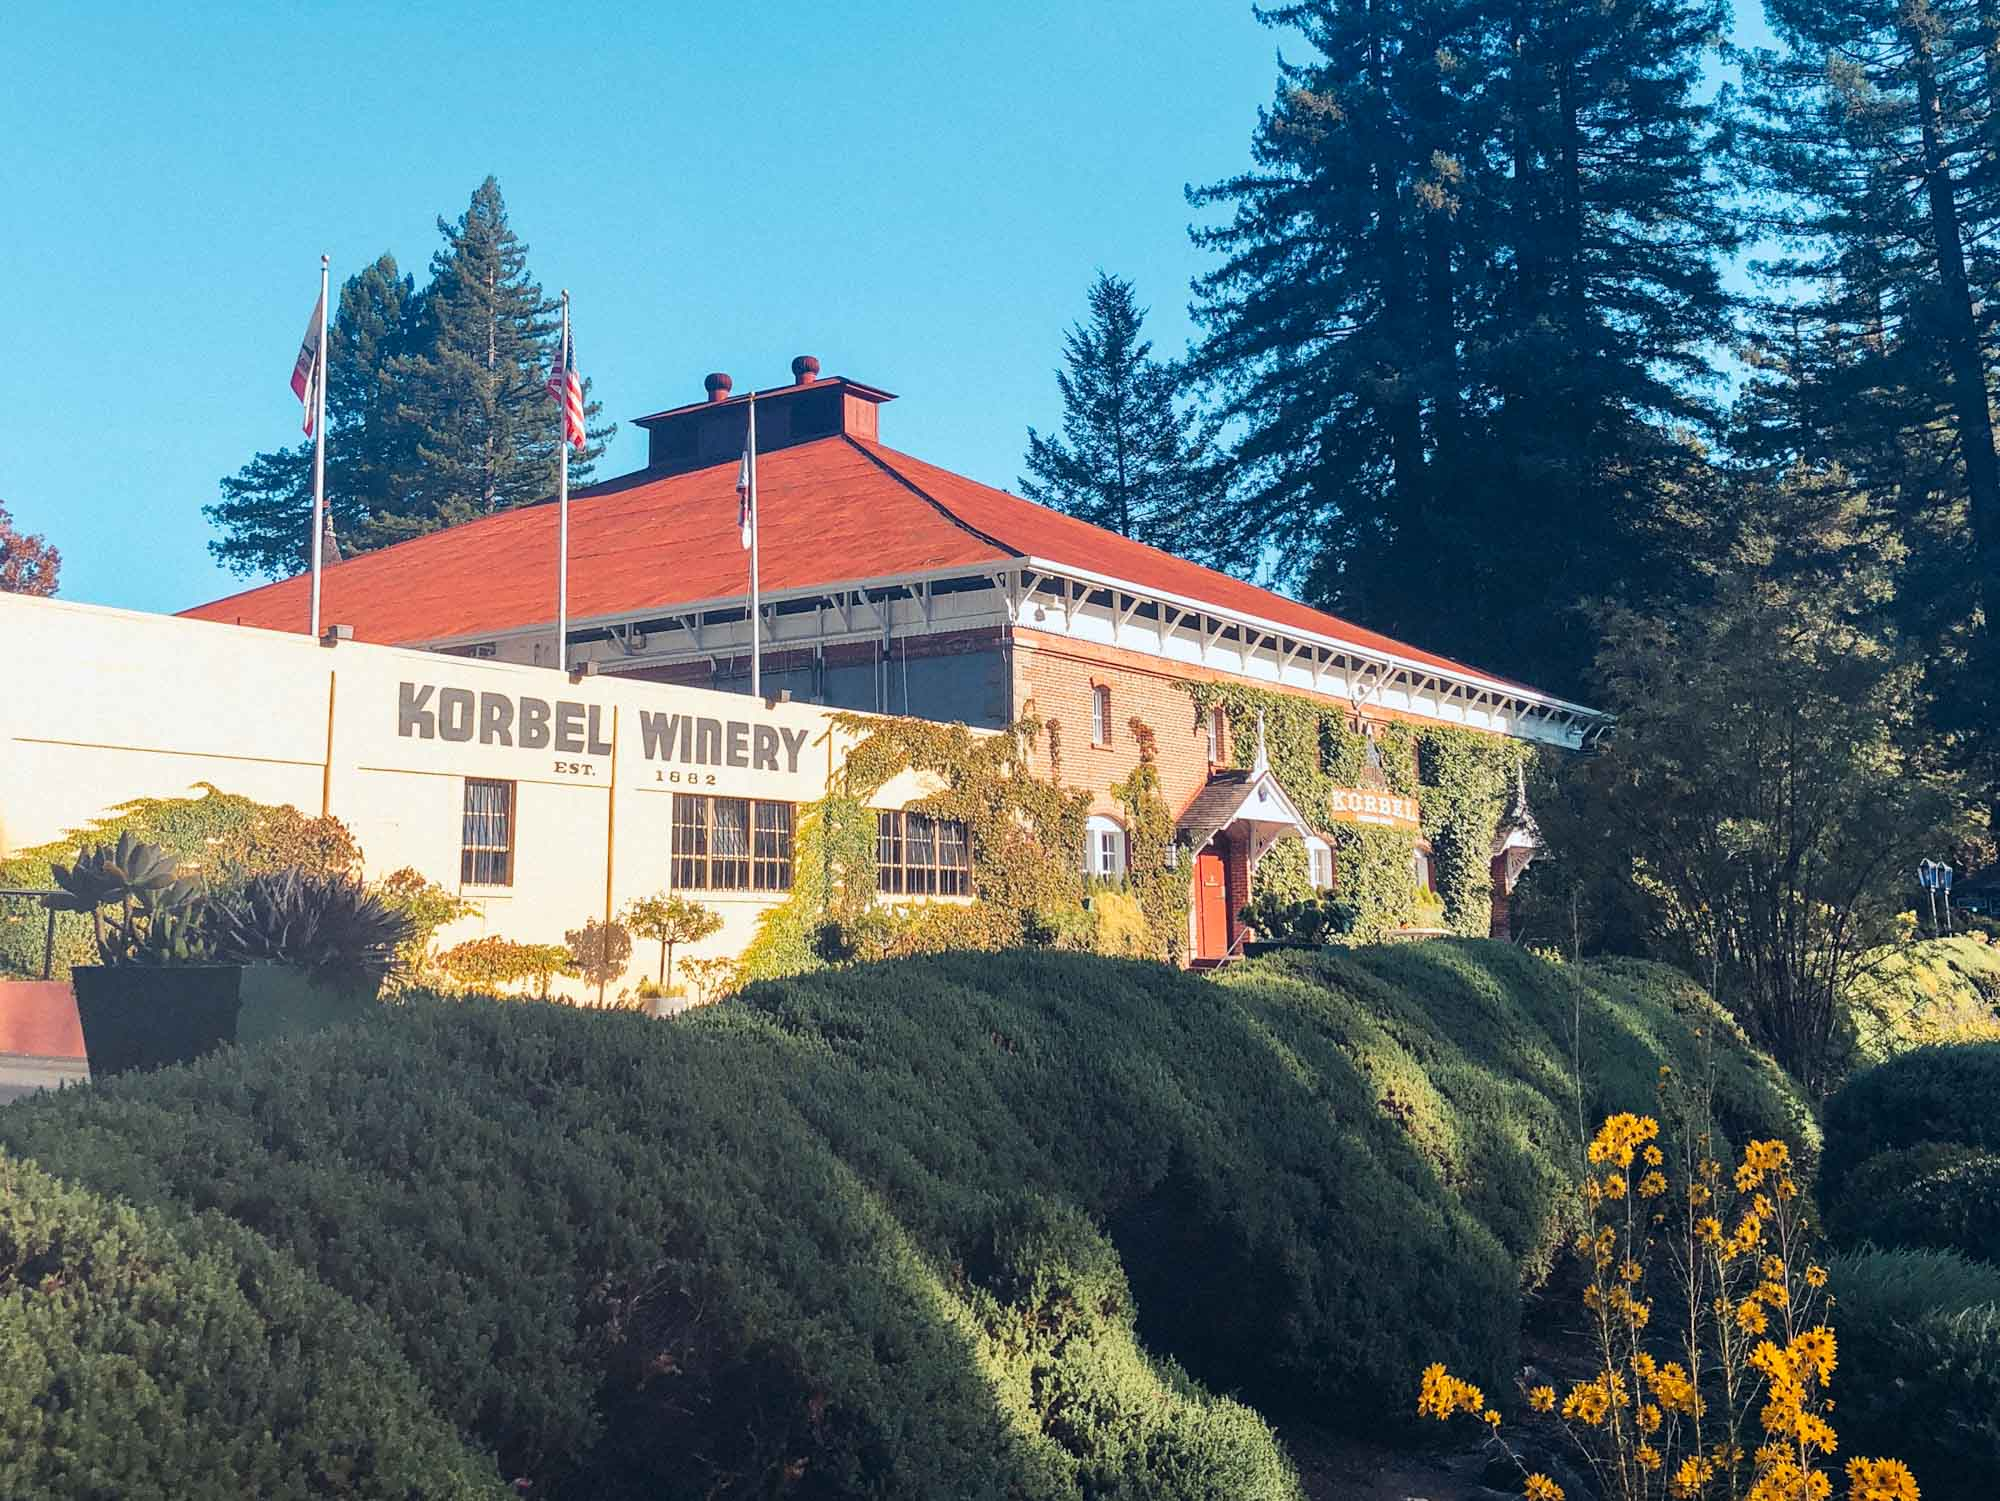 Korbel winery - Best things to do in Sonoma